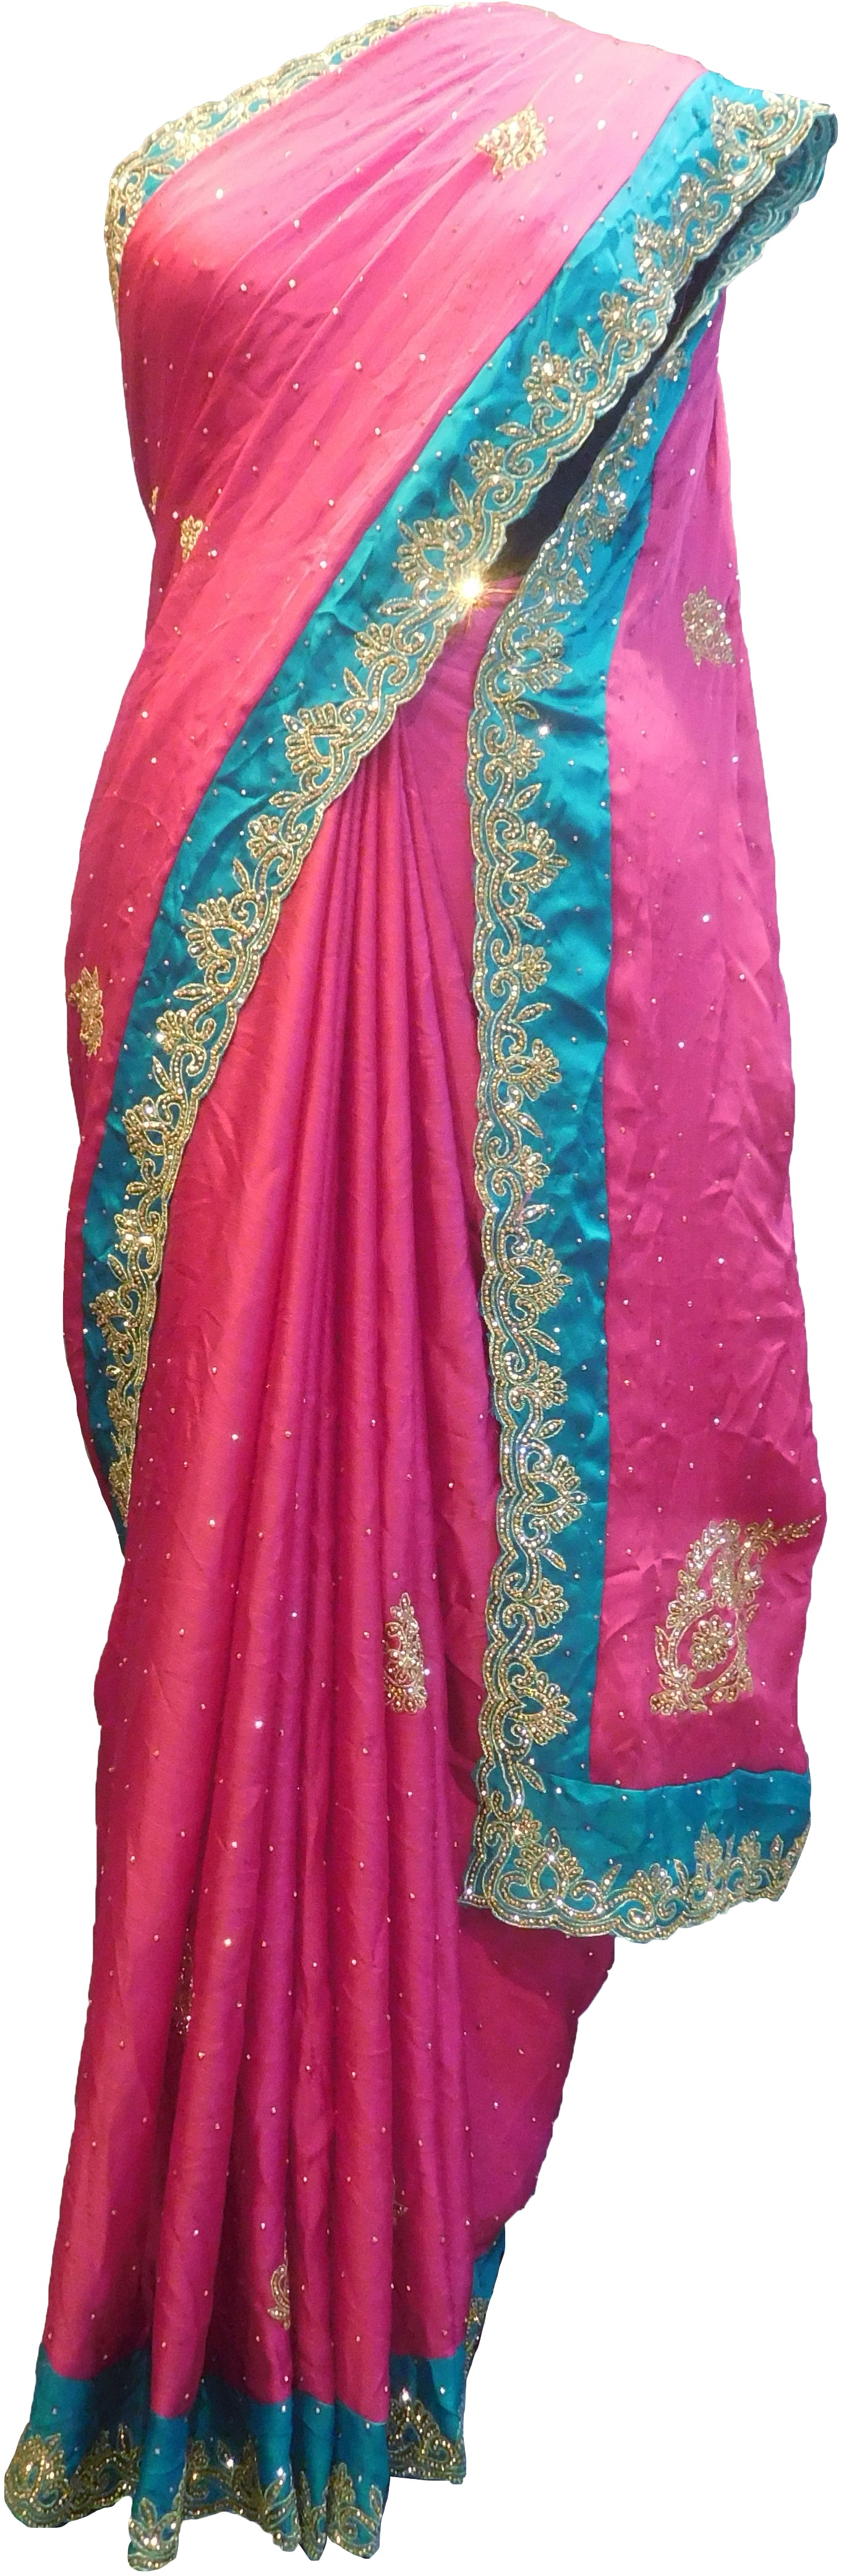 SMSAREE Pink & Turquoise Designer Wedding Partywear Crepe (Chinon) Stone & Zari Hand Embroidery Work Bridal Saree Sari With Blouse Piece F316